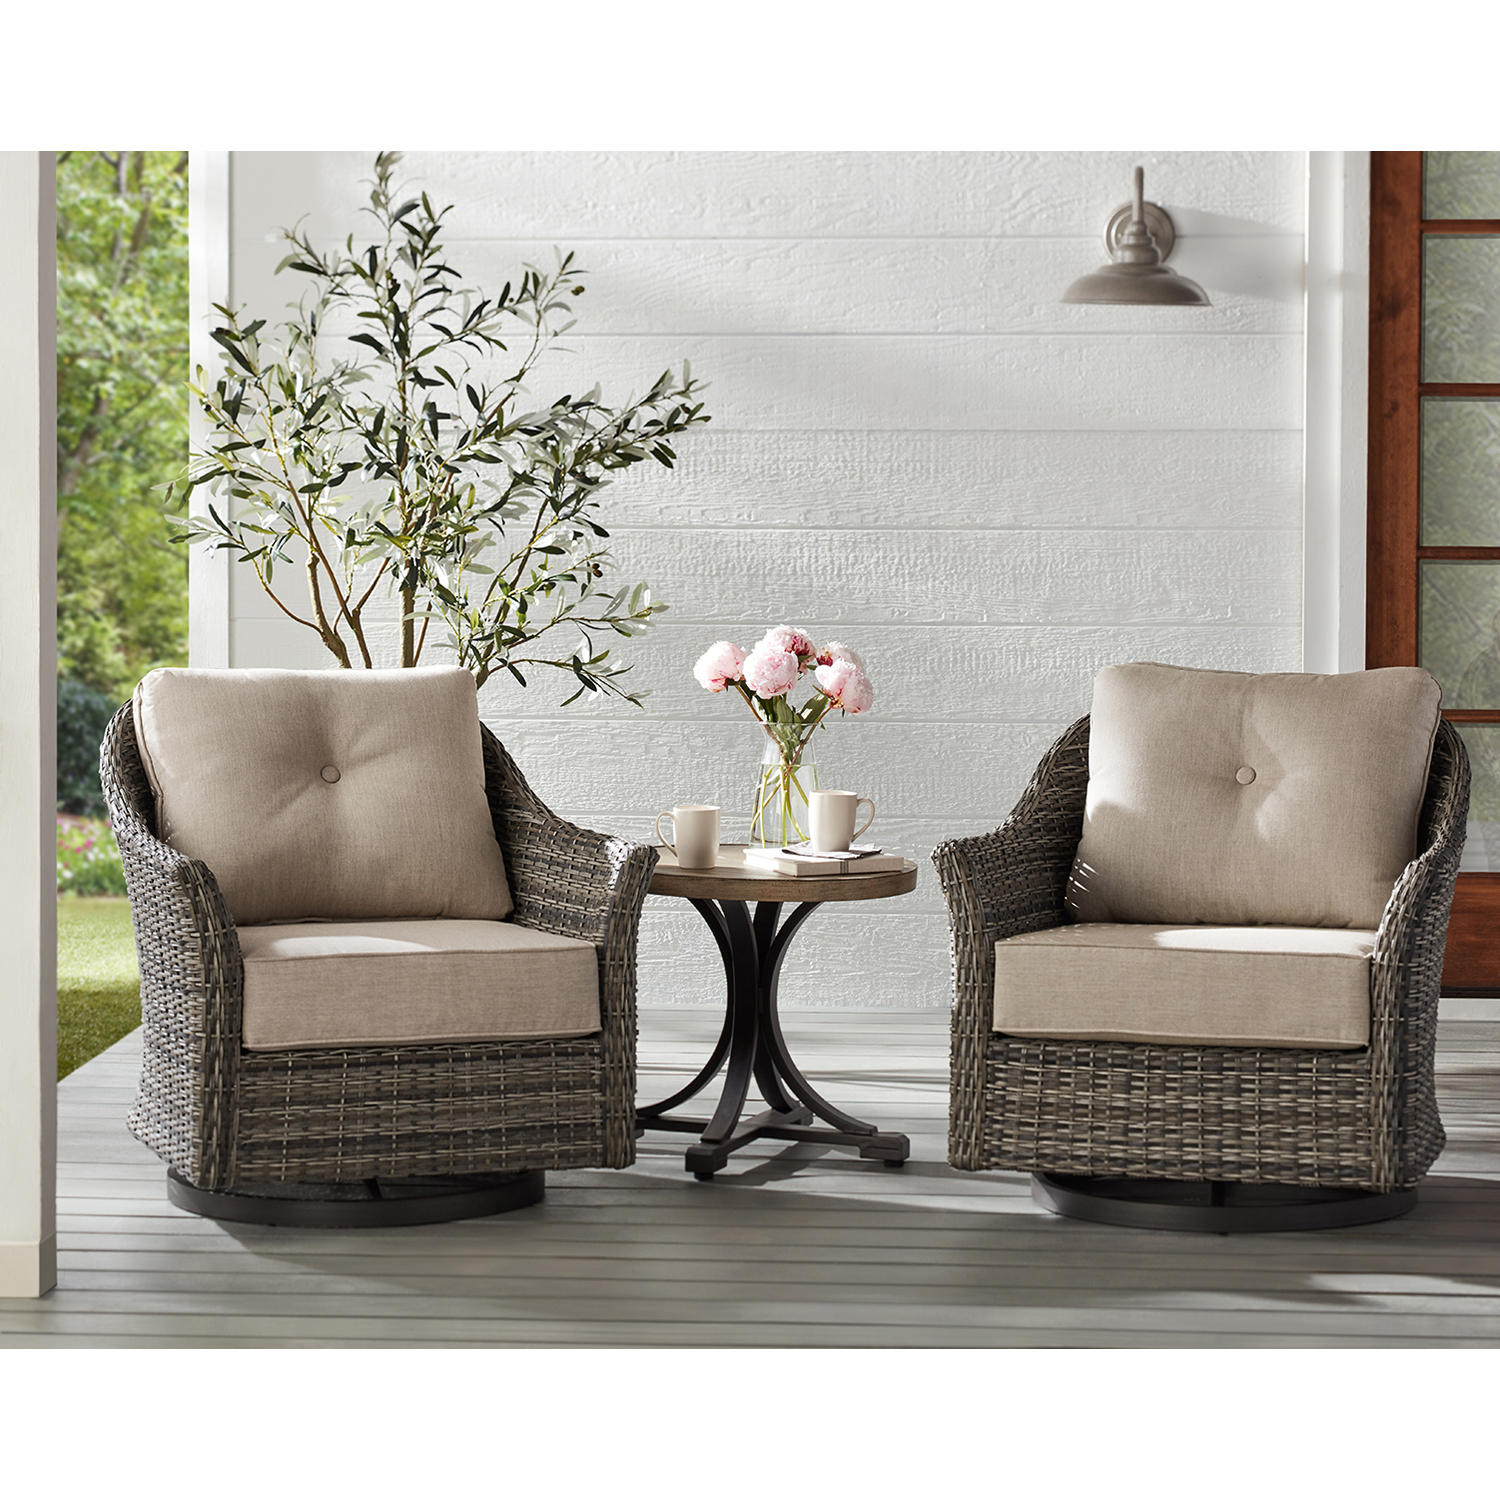 Member's Mark Townsend 3-Piece Seating Patio Set